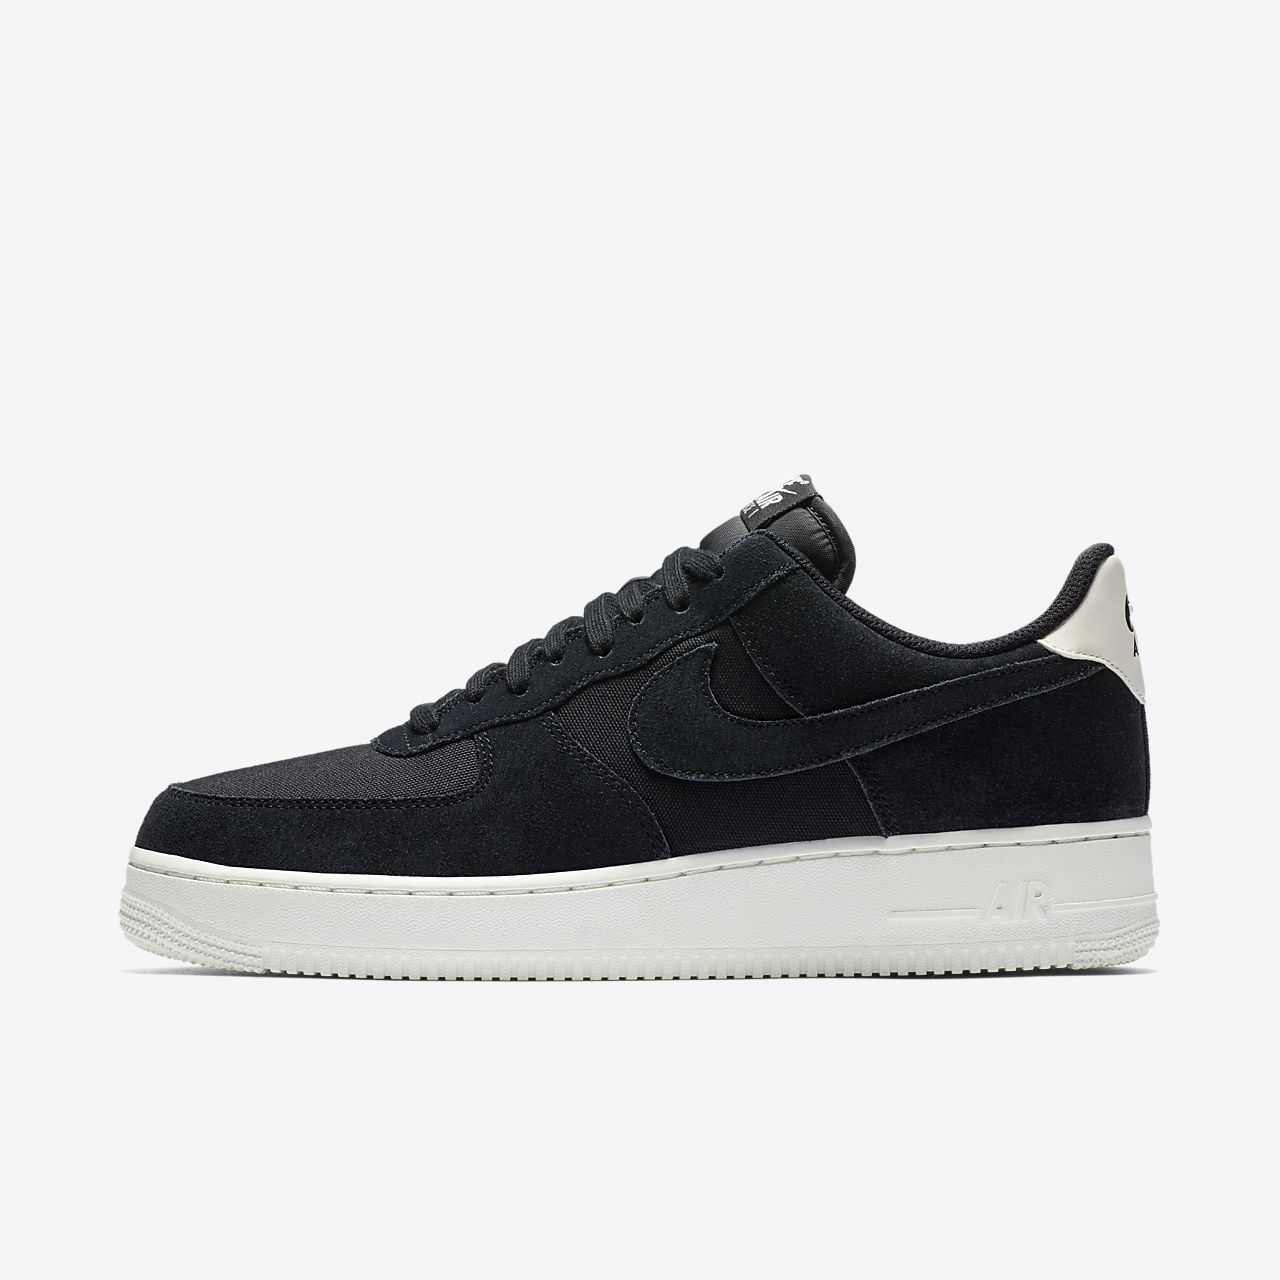 Nike Air Force 1 '07 Suede Men's Shoe